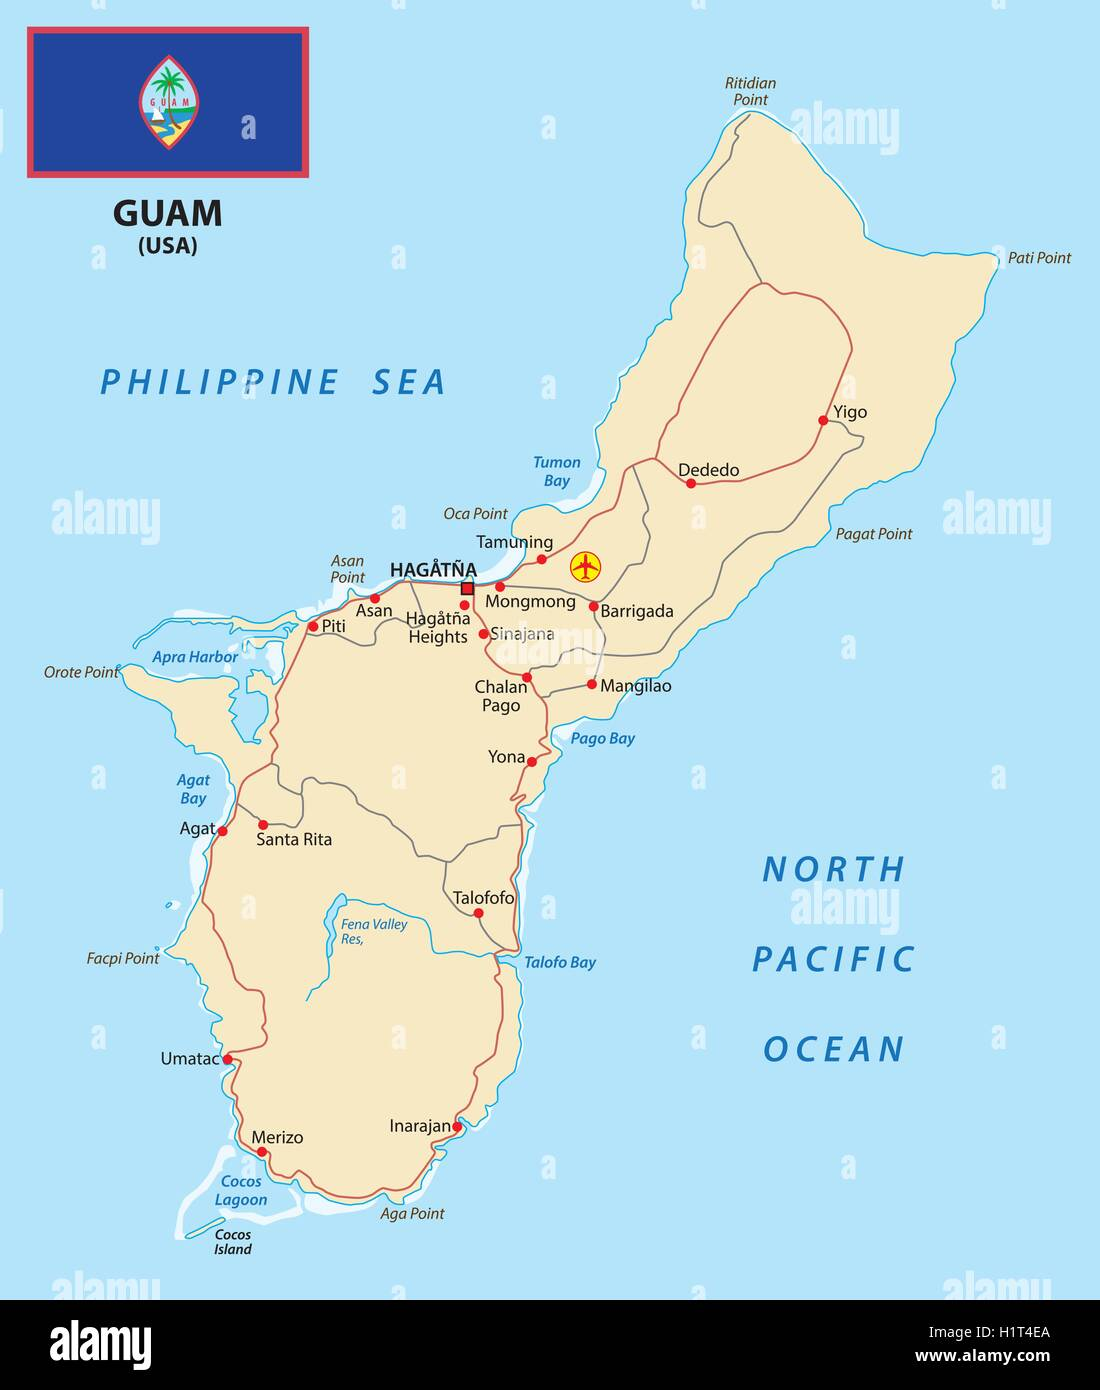 Guam Map Stock Photos & Guam Map Stock Images - Alamy